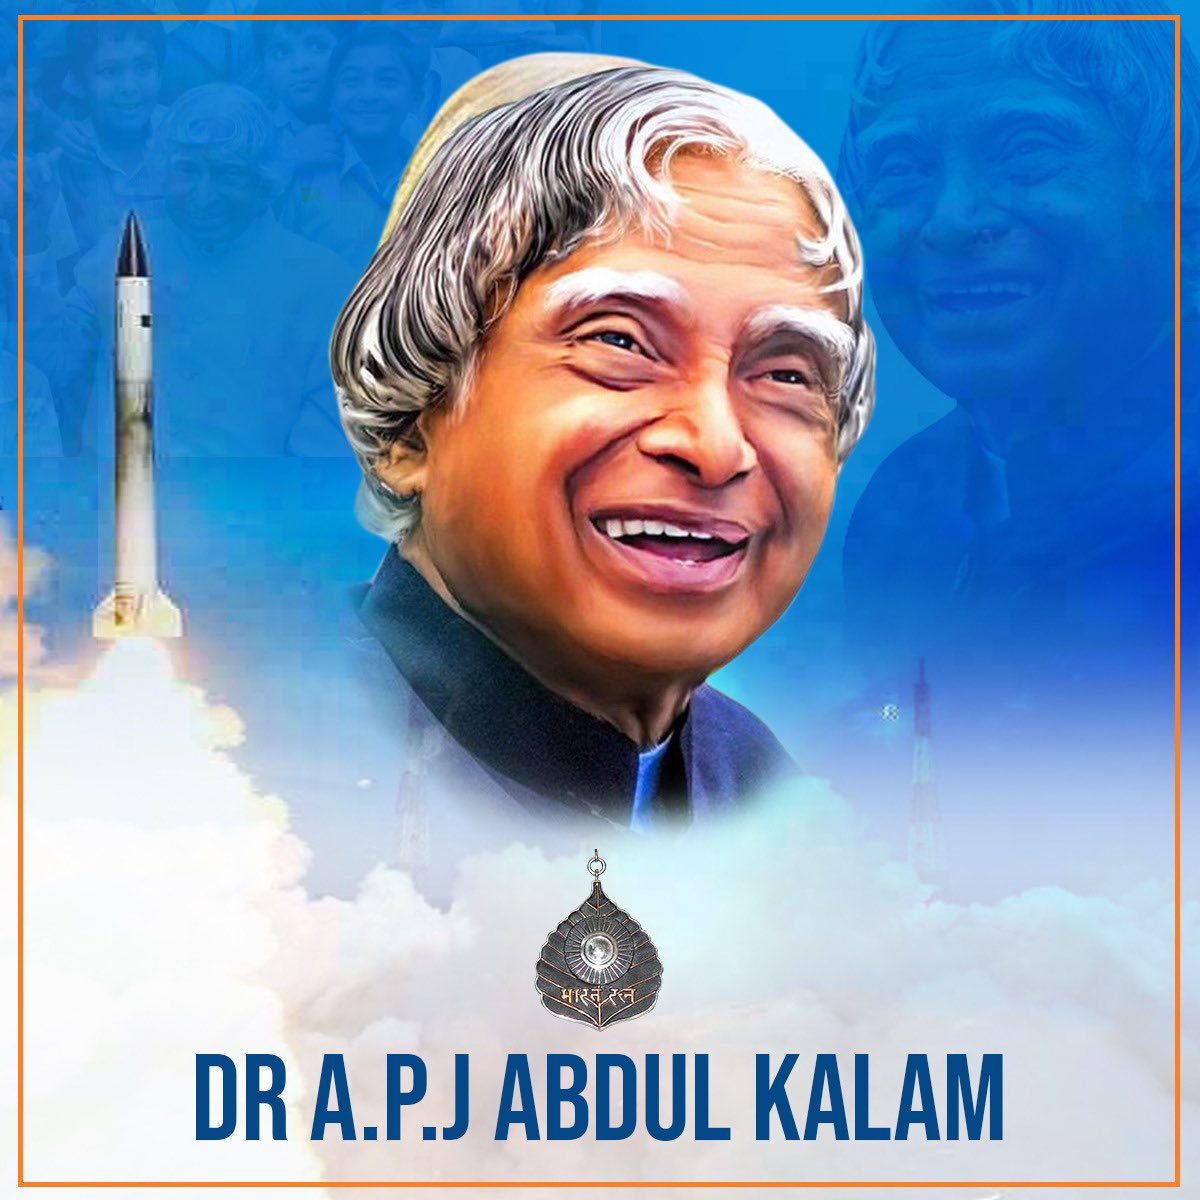 Tributes to the great scientist, former President & Bharat Ratna Dr #APJAbdulKalam on his birth anniversary.  His ideas will keep inspiring the youth for generations to come.@SavvyAhmedabad @CREDAINational @ASSOCHAM4India https://t.co/LtcjRdUXa2